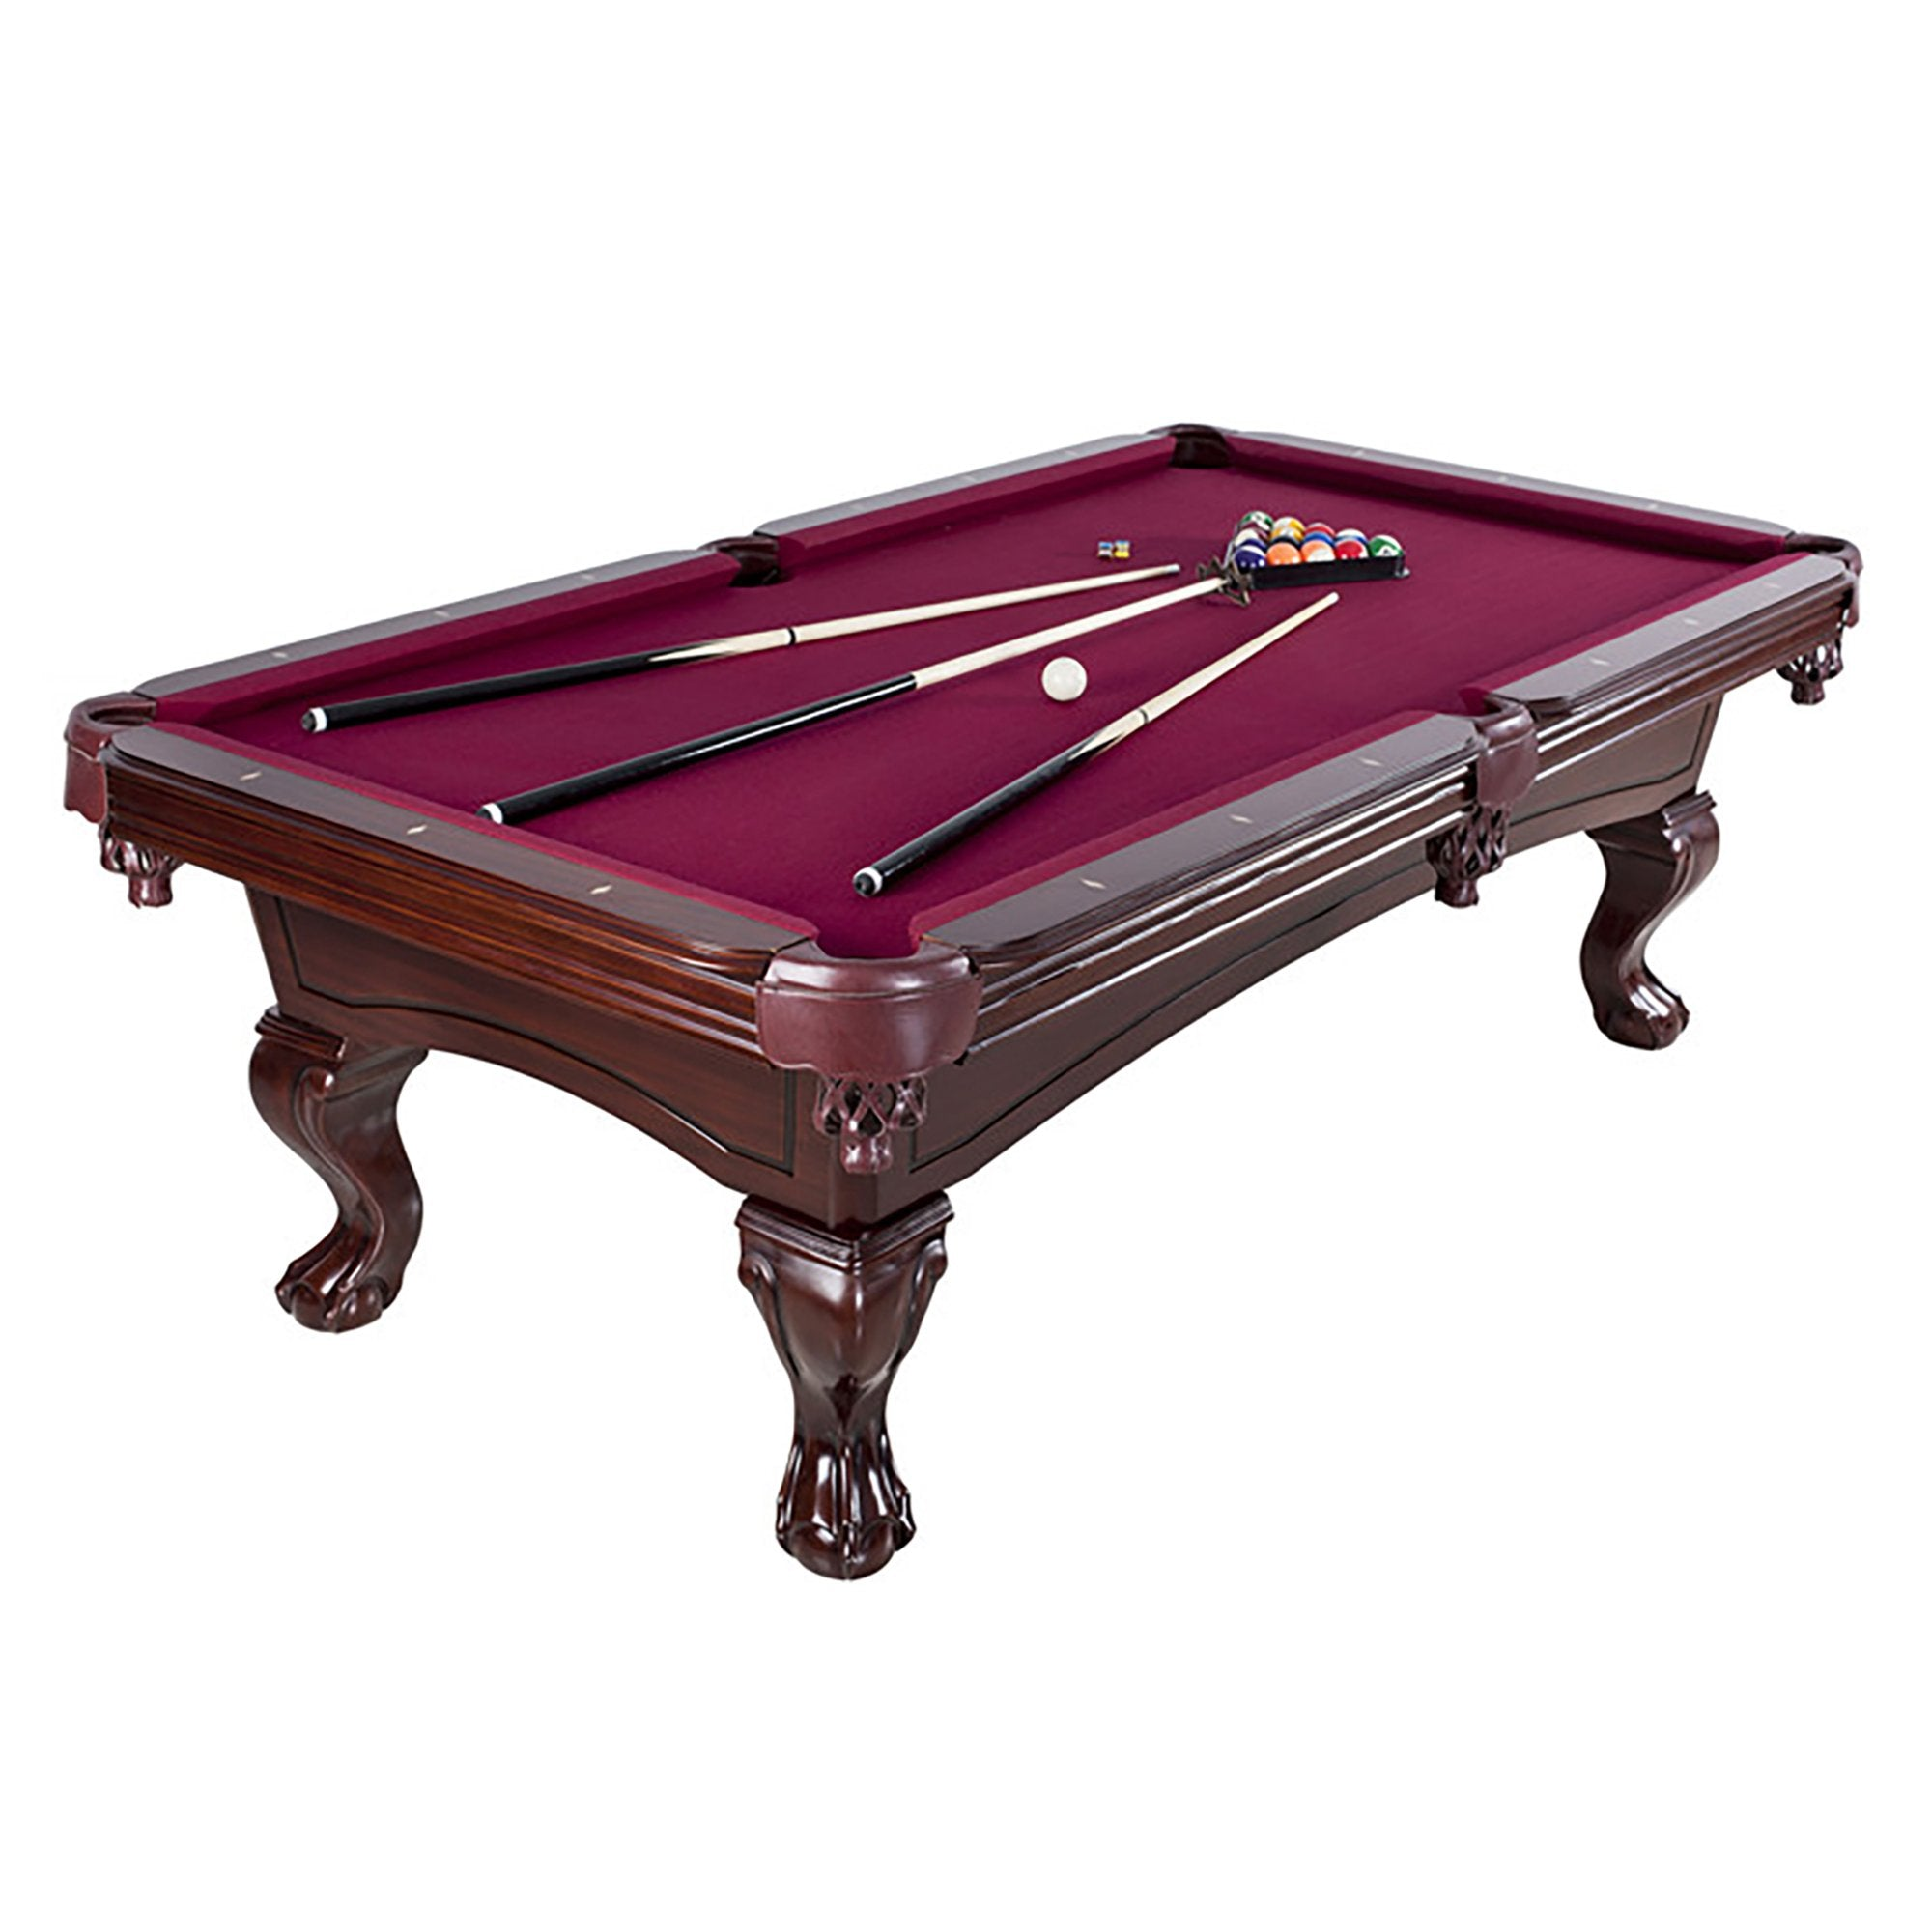 Hathaway Augusta Mahogany 8ft Non Slate Pool Table - Gaming Blaze